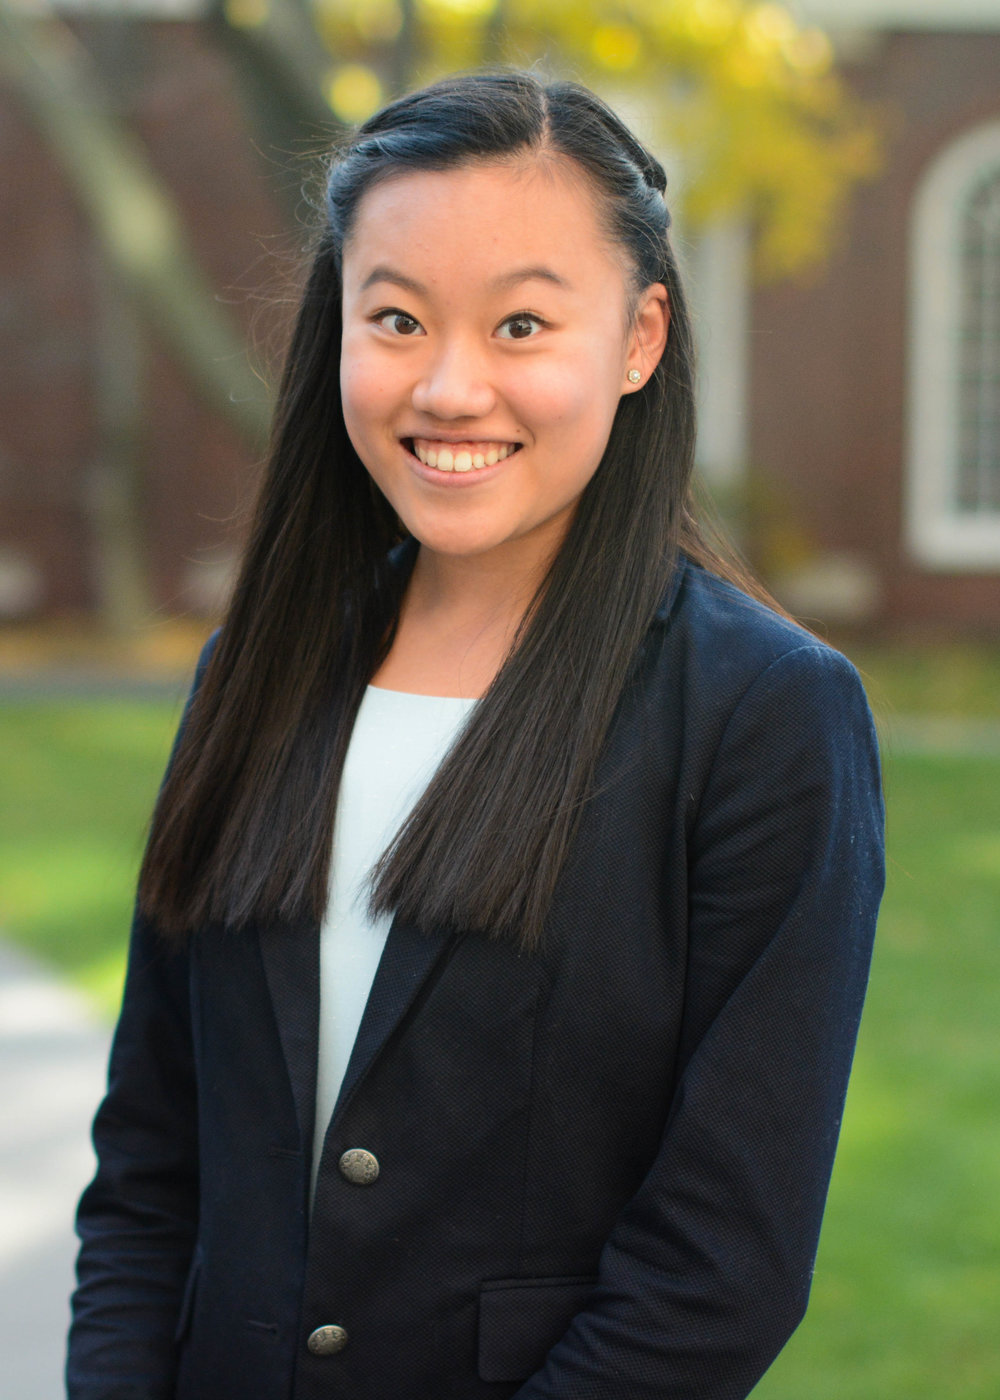 AMY ZHOU '20 | OPERATIONS MANAGER - Amy was born and raised in Colorado and is now a freshman living in Canaday. Outside of HSA, she is an operations associate for Harvard China Forum and on the business board of The Harvard Crimson. While she's still undecided about her concentration, she is interested in economics and is a board member of the Harvard Undergraduates Economics Association. In her spare time, Amy enjoys hiking, exploring new restaurants, and hanging out with friends.